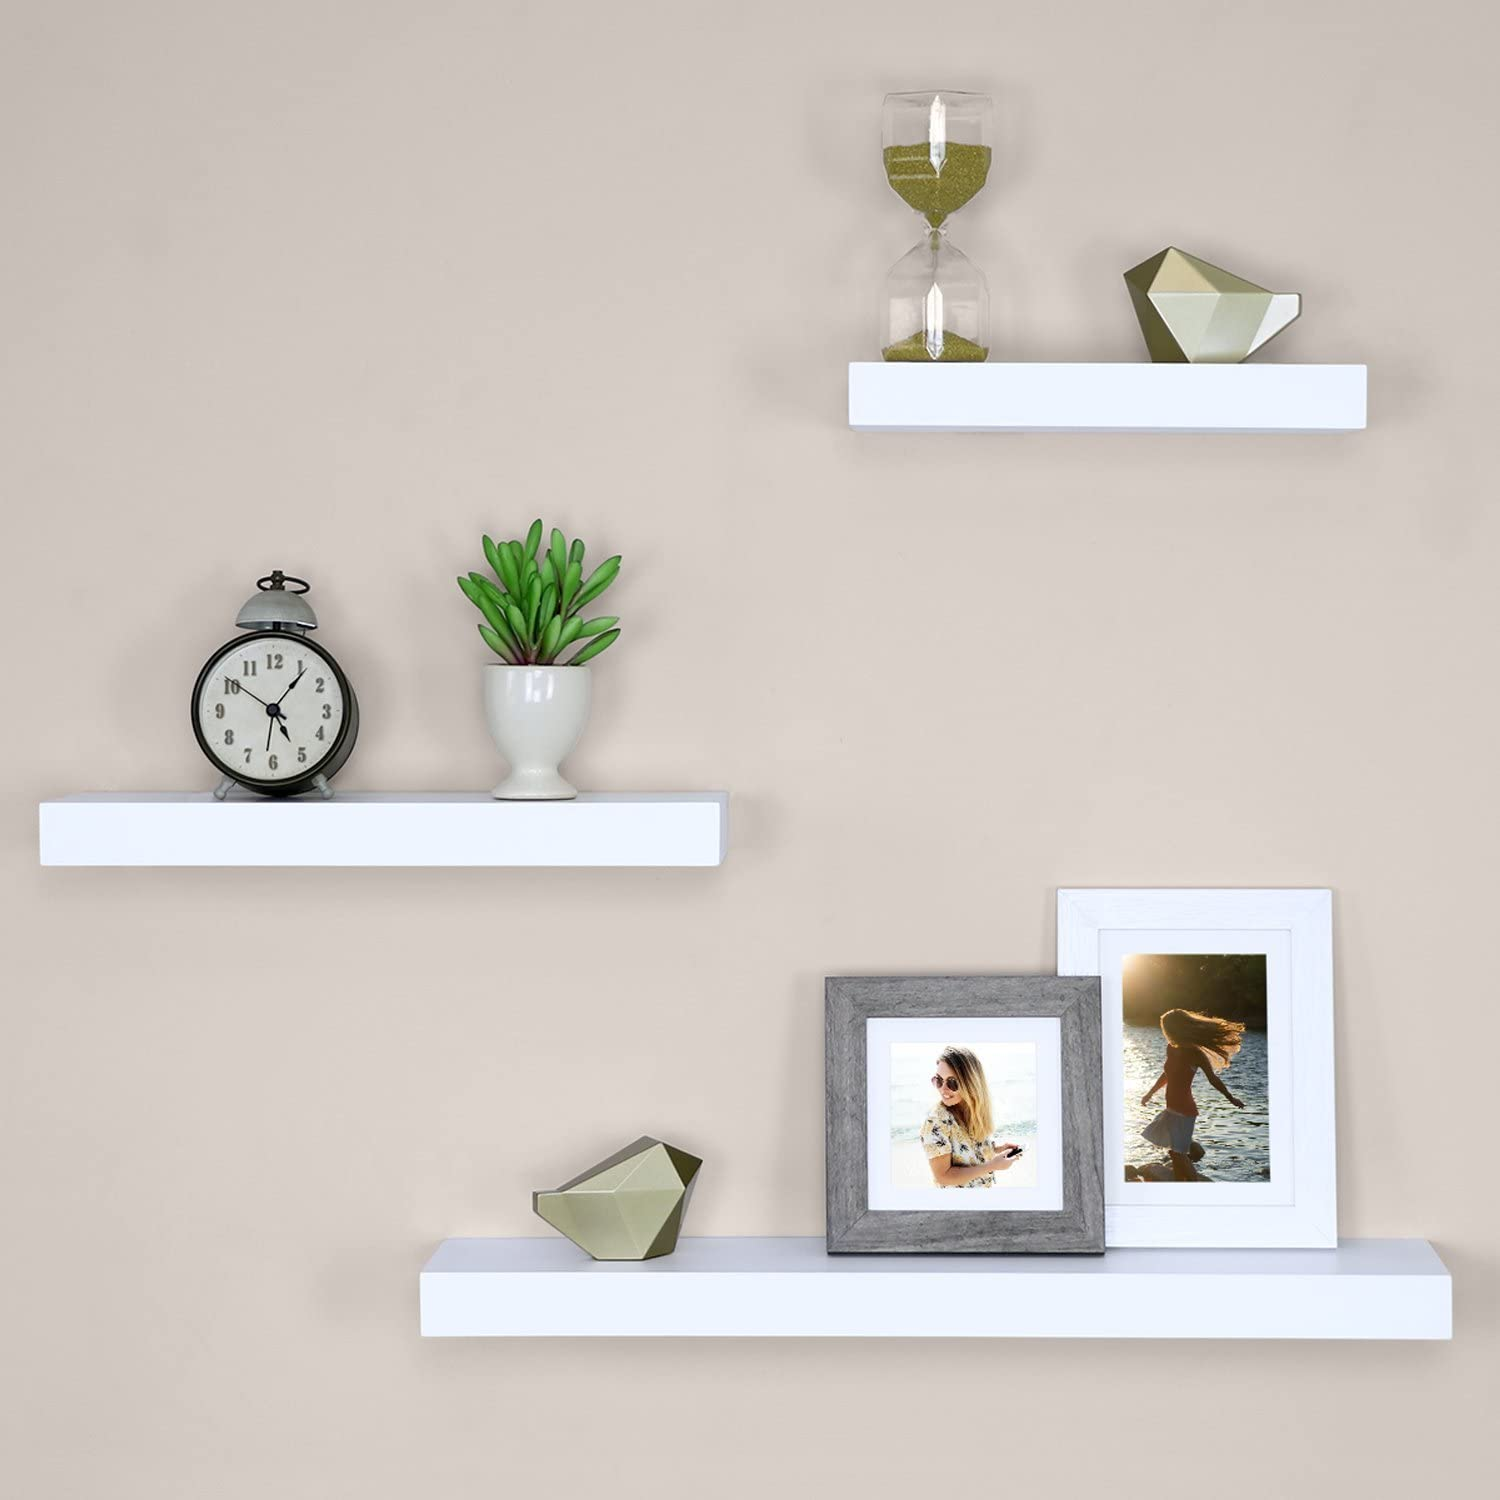 Black Faux Wood Floating Shelves Wall Display Up To 5lbs Weight Limit 2